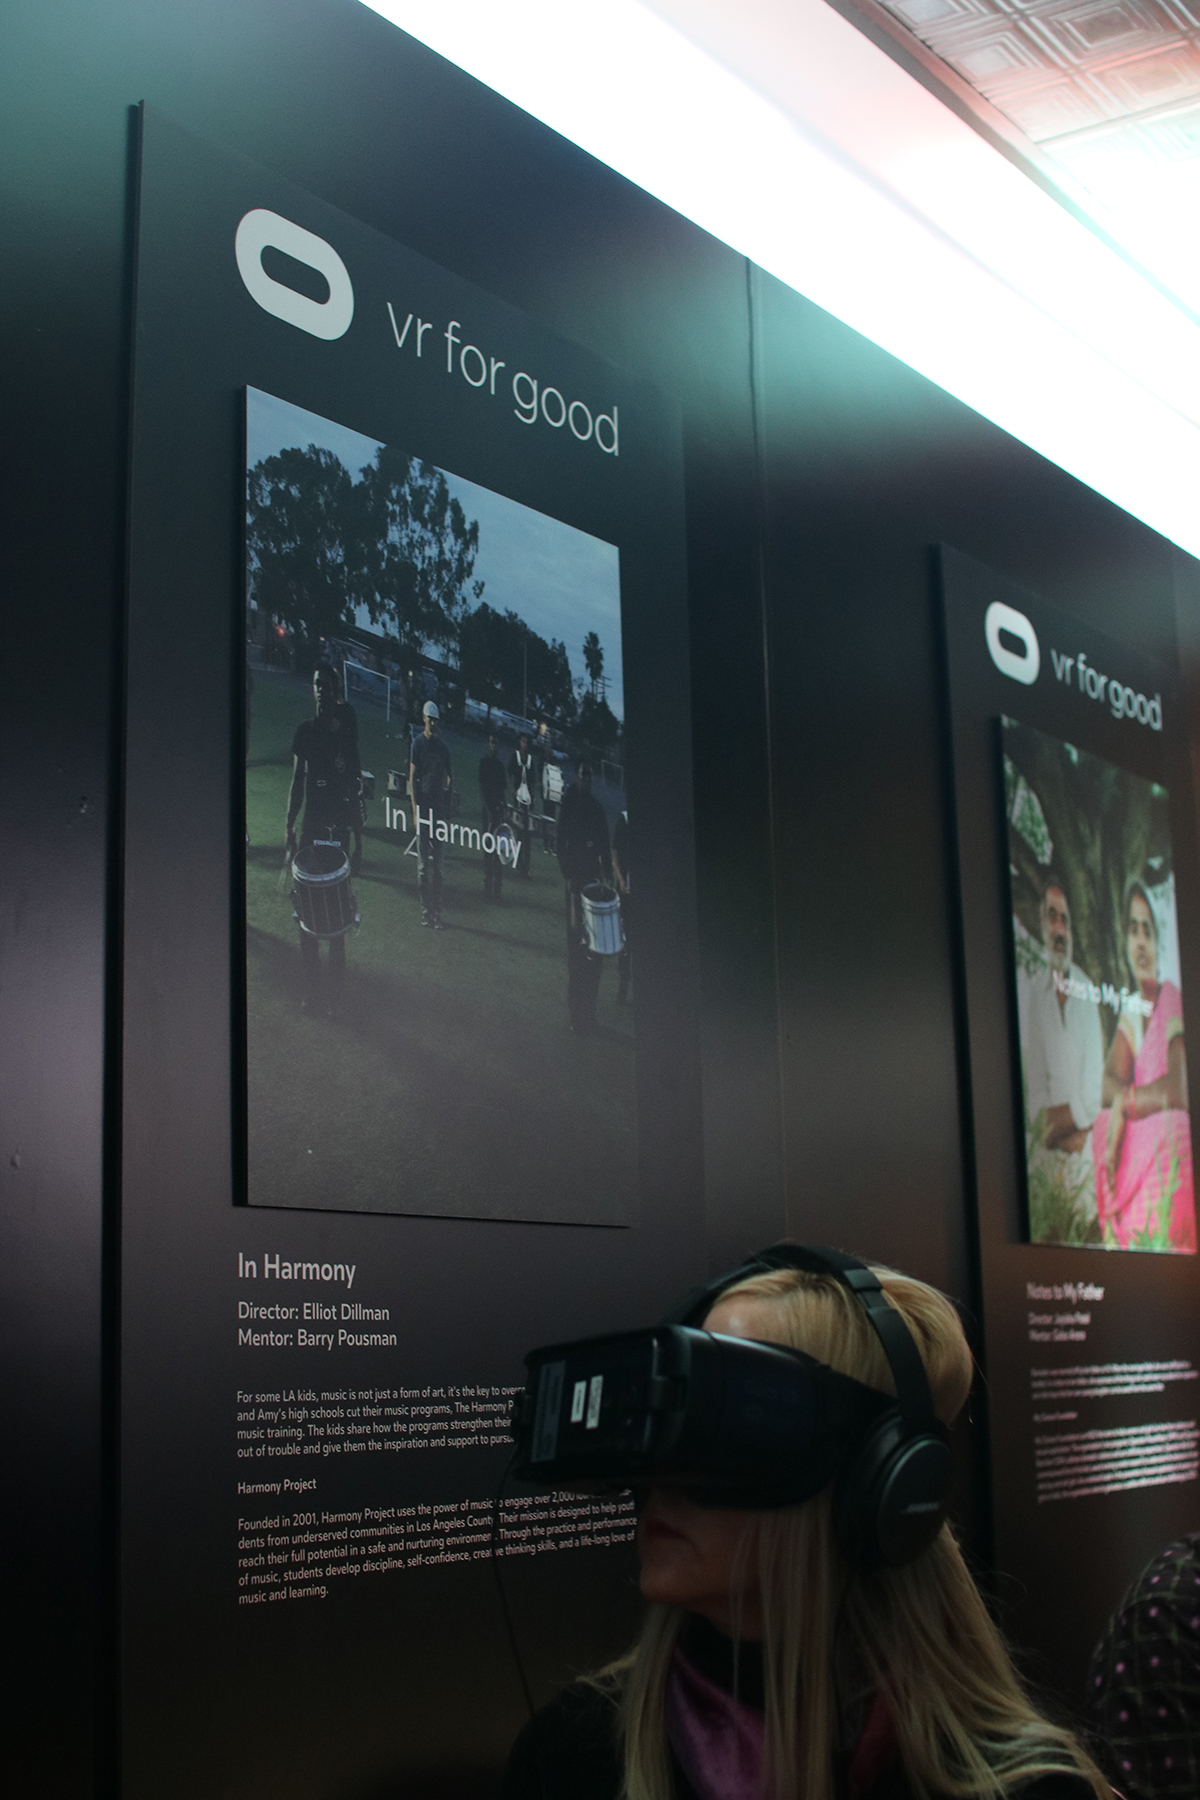 vrforgood-exhibition.jpg